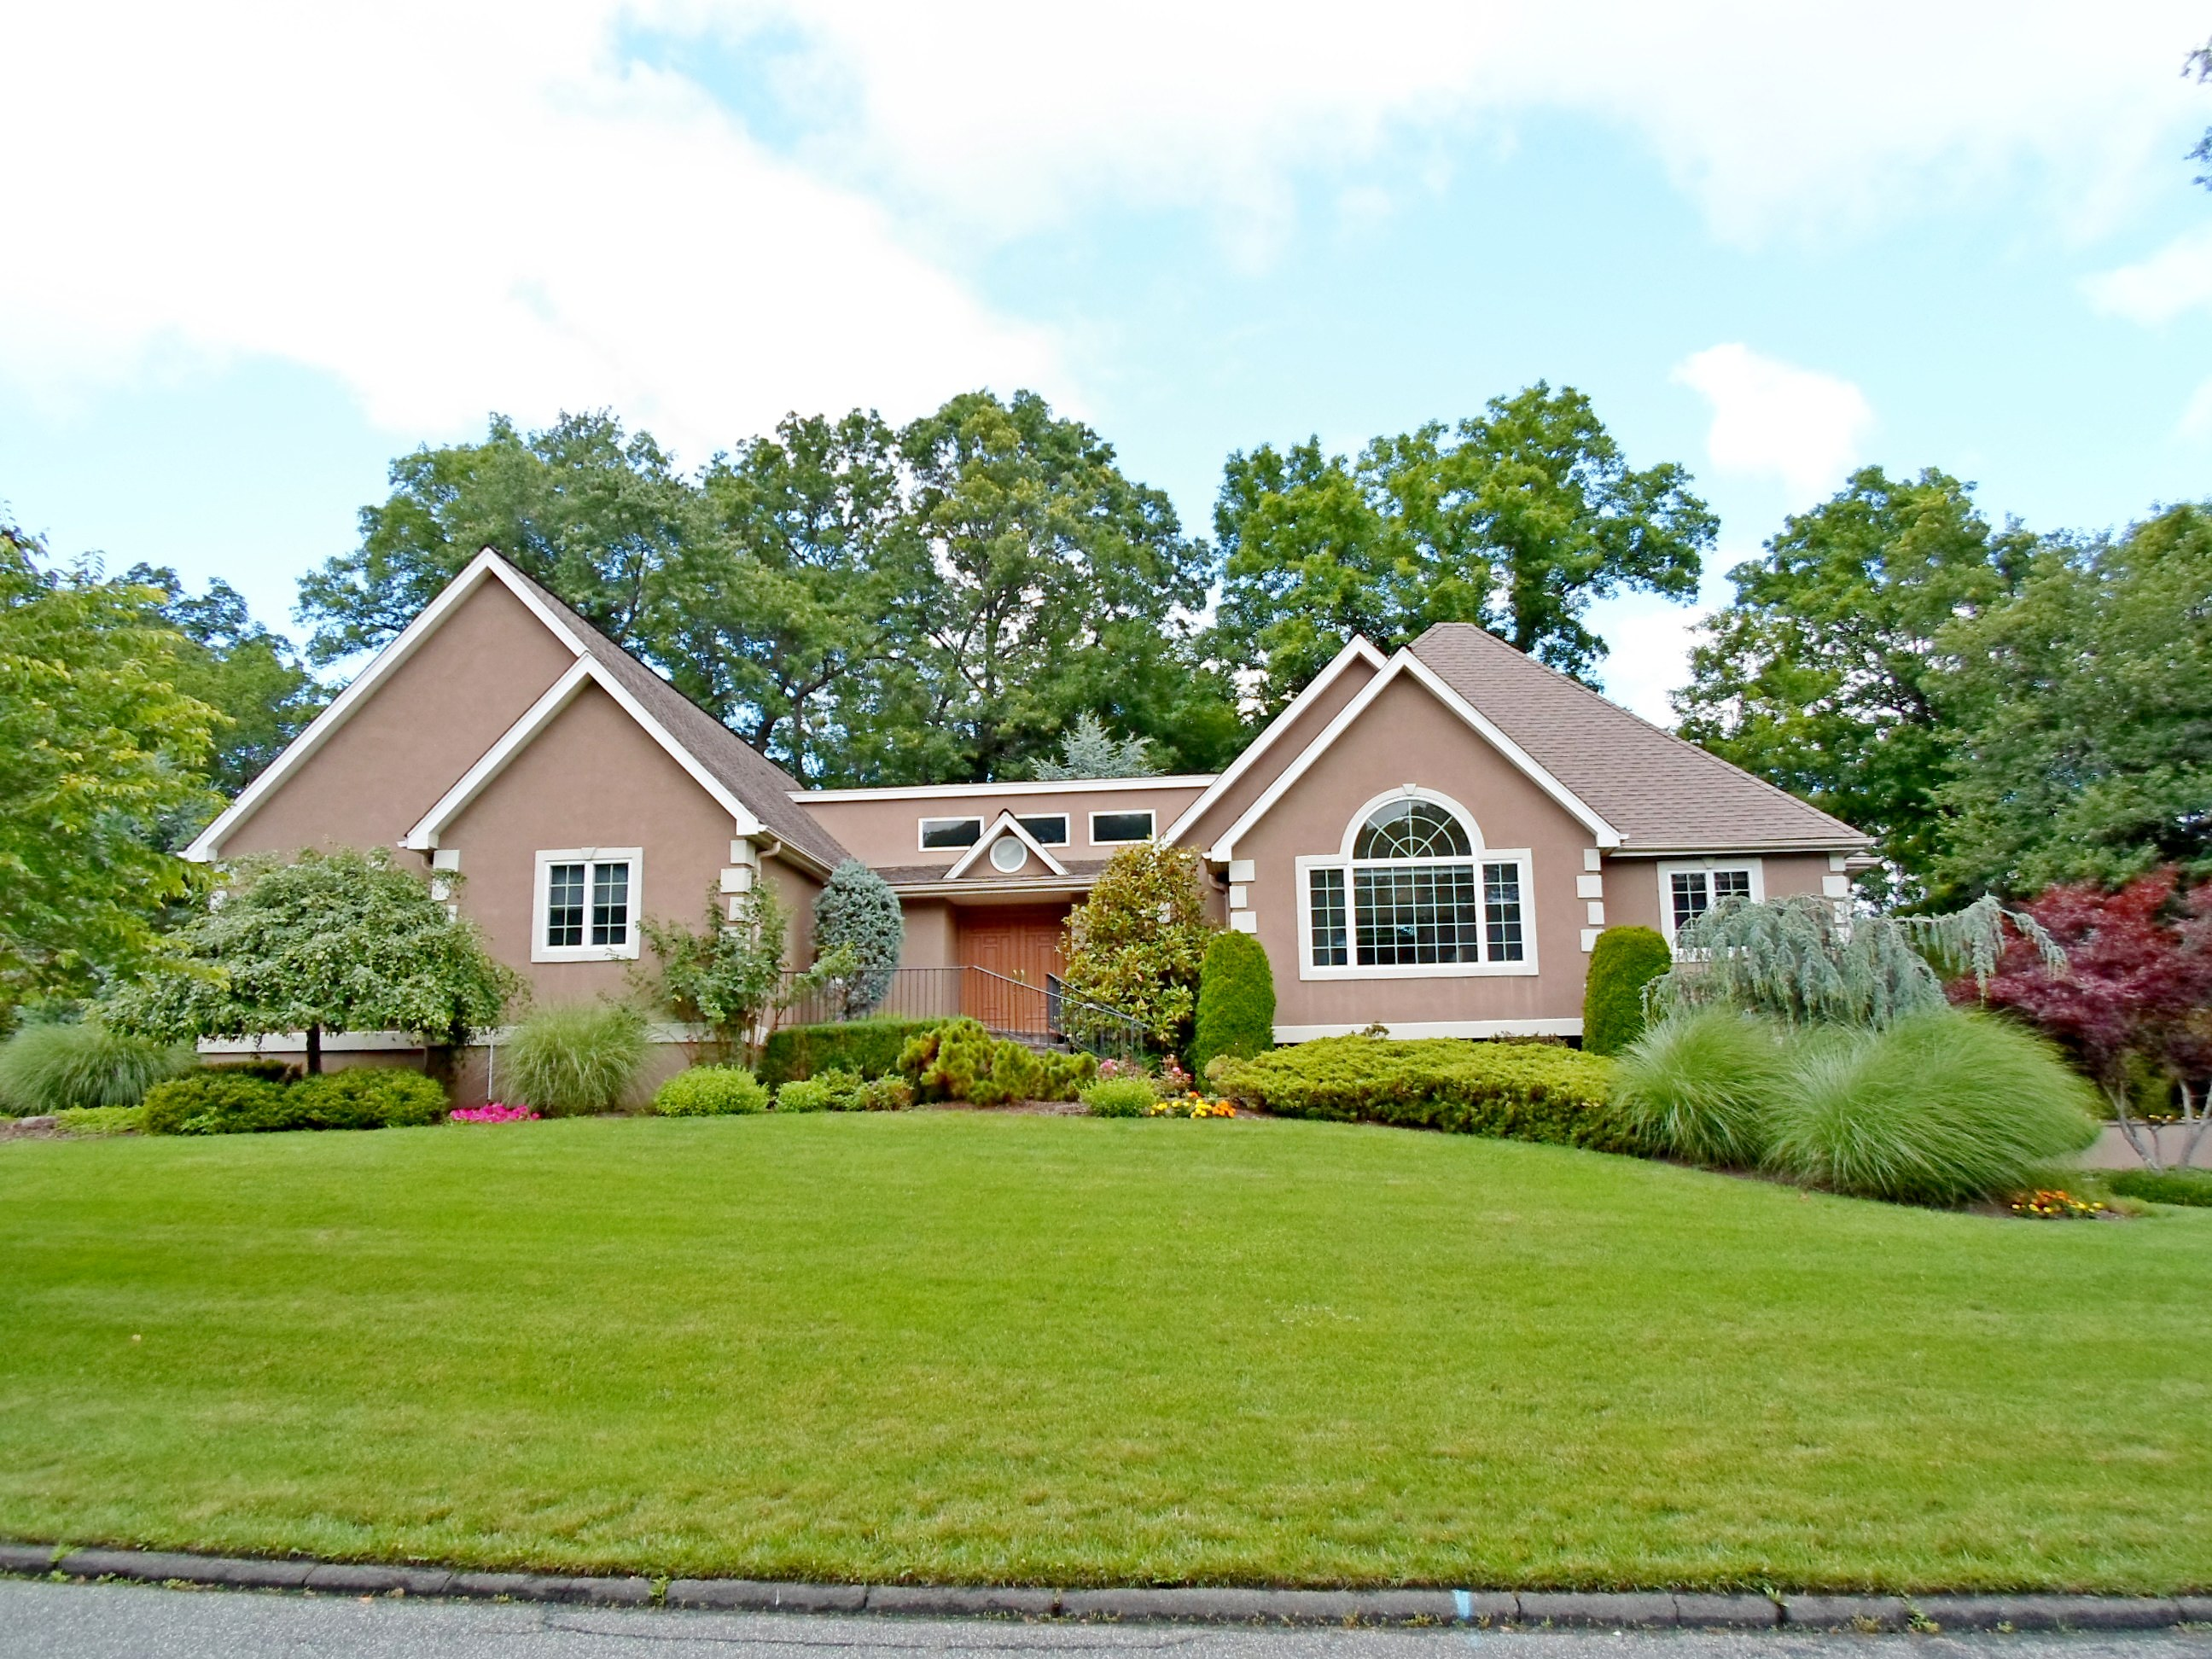 Single Family Home for Sale at Unique Custom Ranch - Sale Pending 2 Still Pond Terrace West Nyack, New York 10994 United States